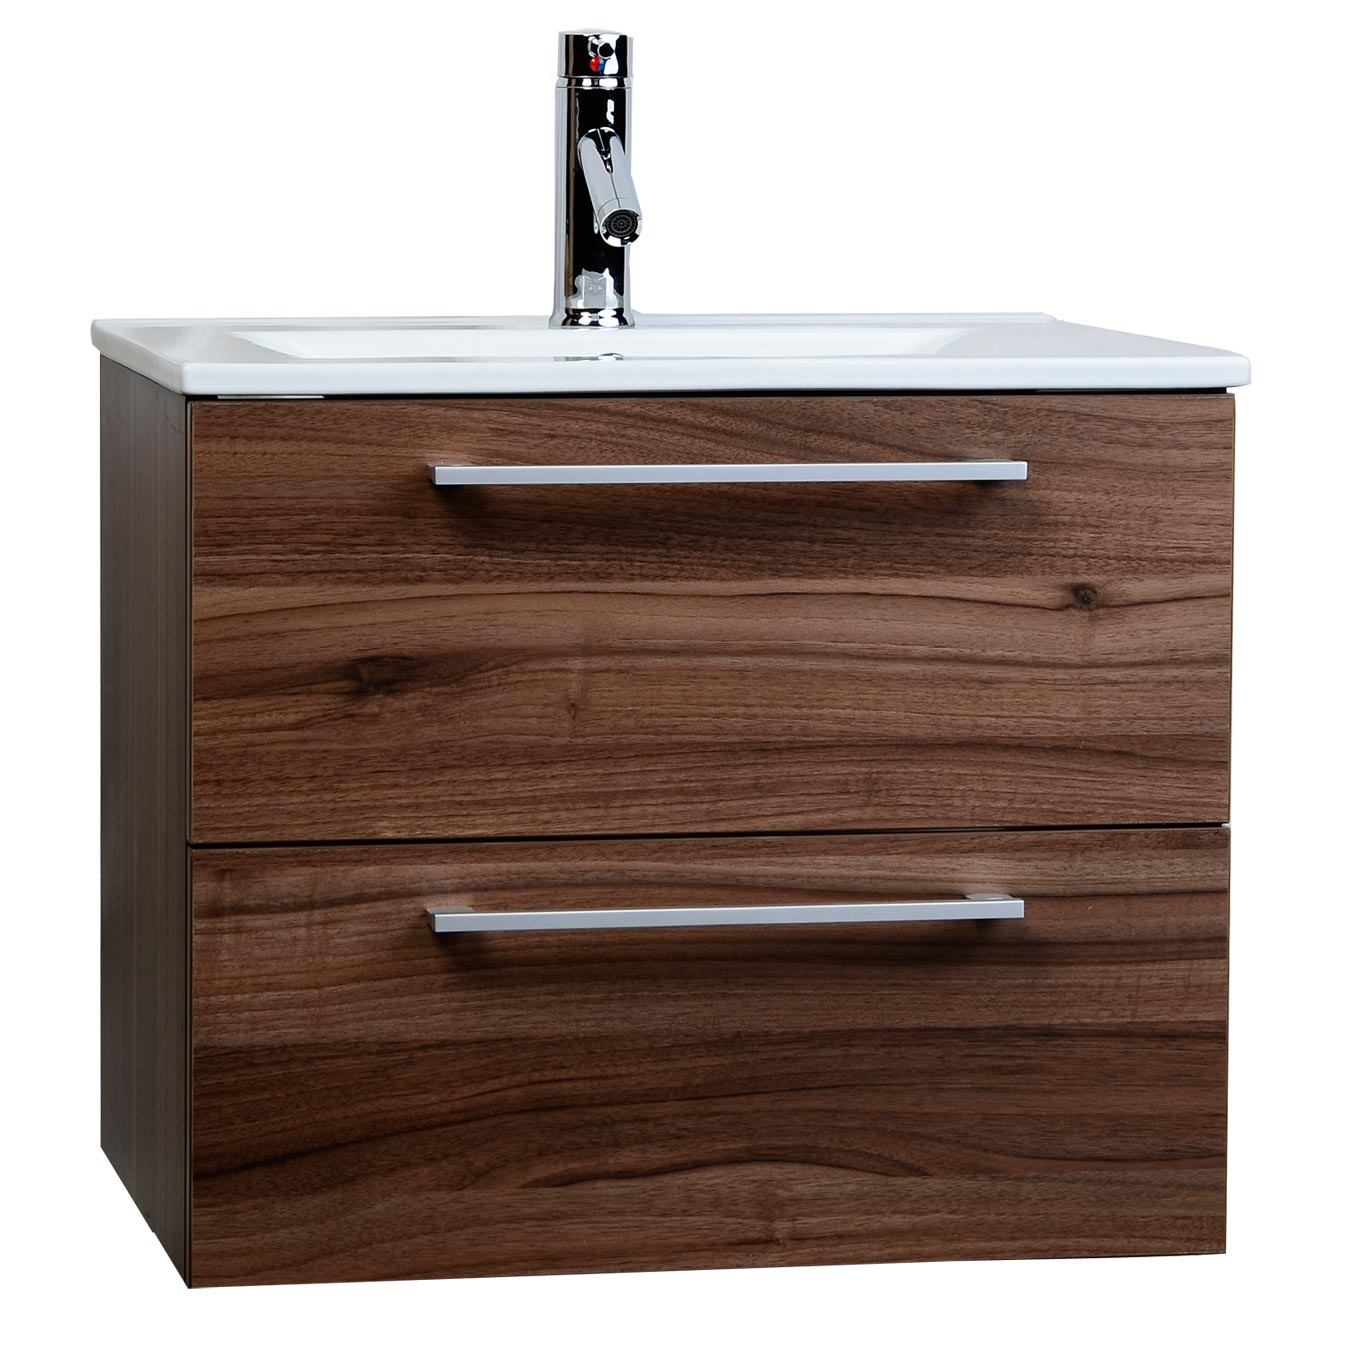 caroline vanity vanities pin contemporary avenue bathroom inch